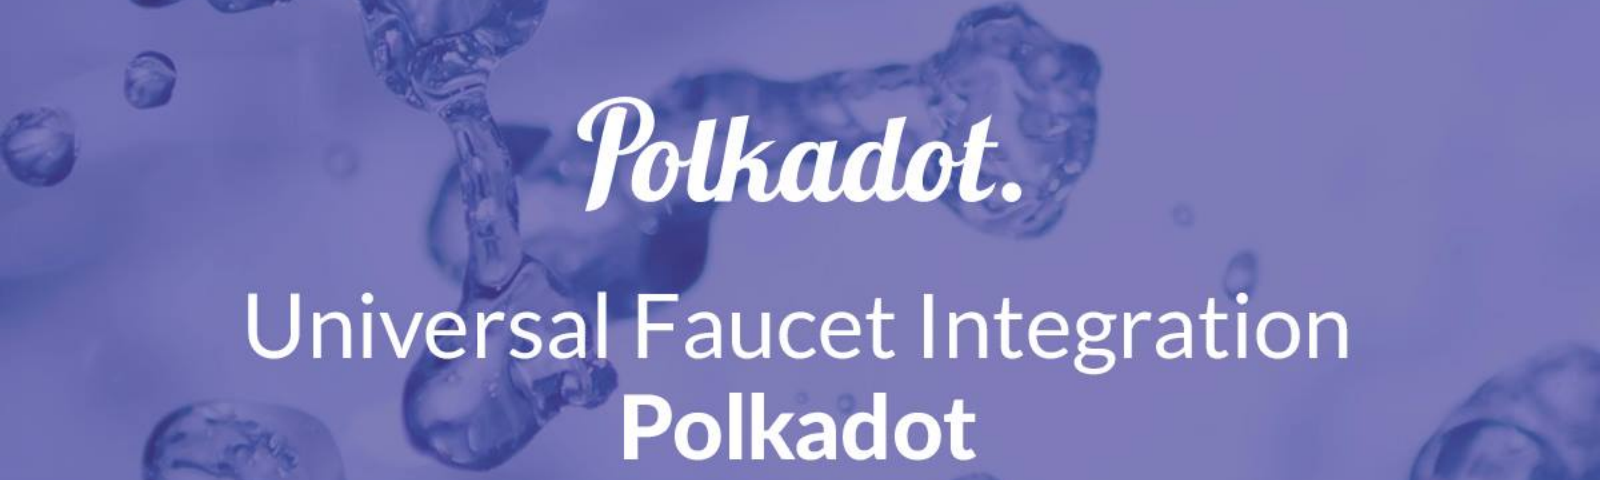 Universal Faucet Integration: Polkadot - By BlockX Labs